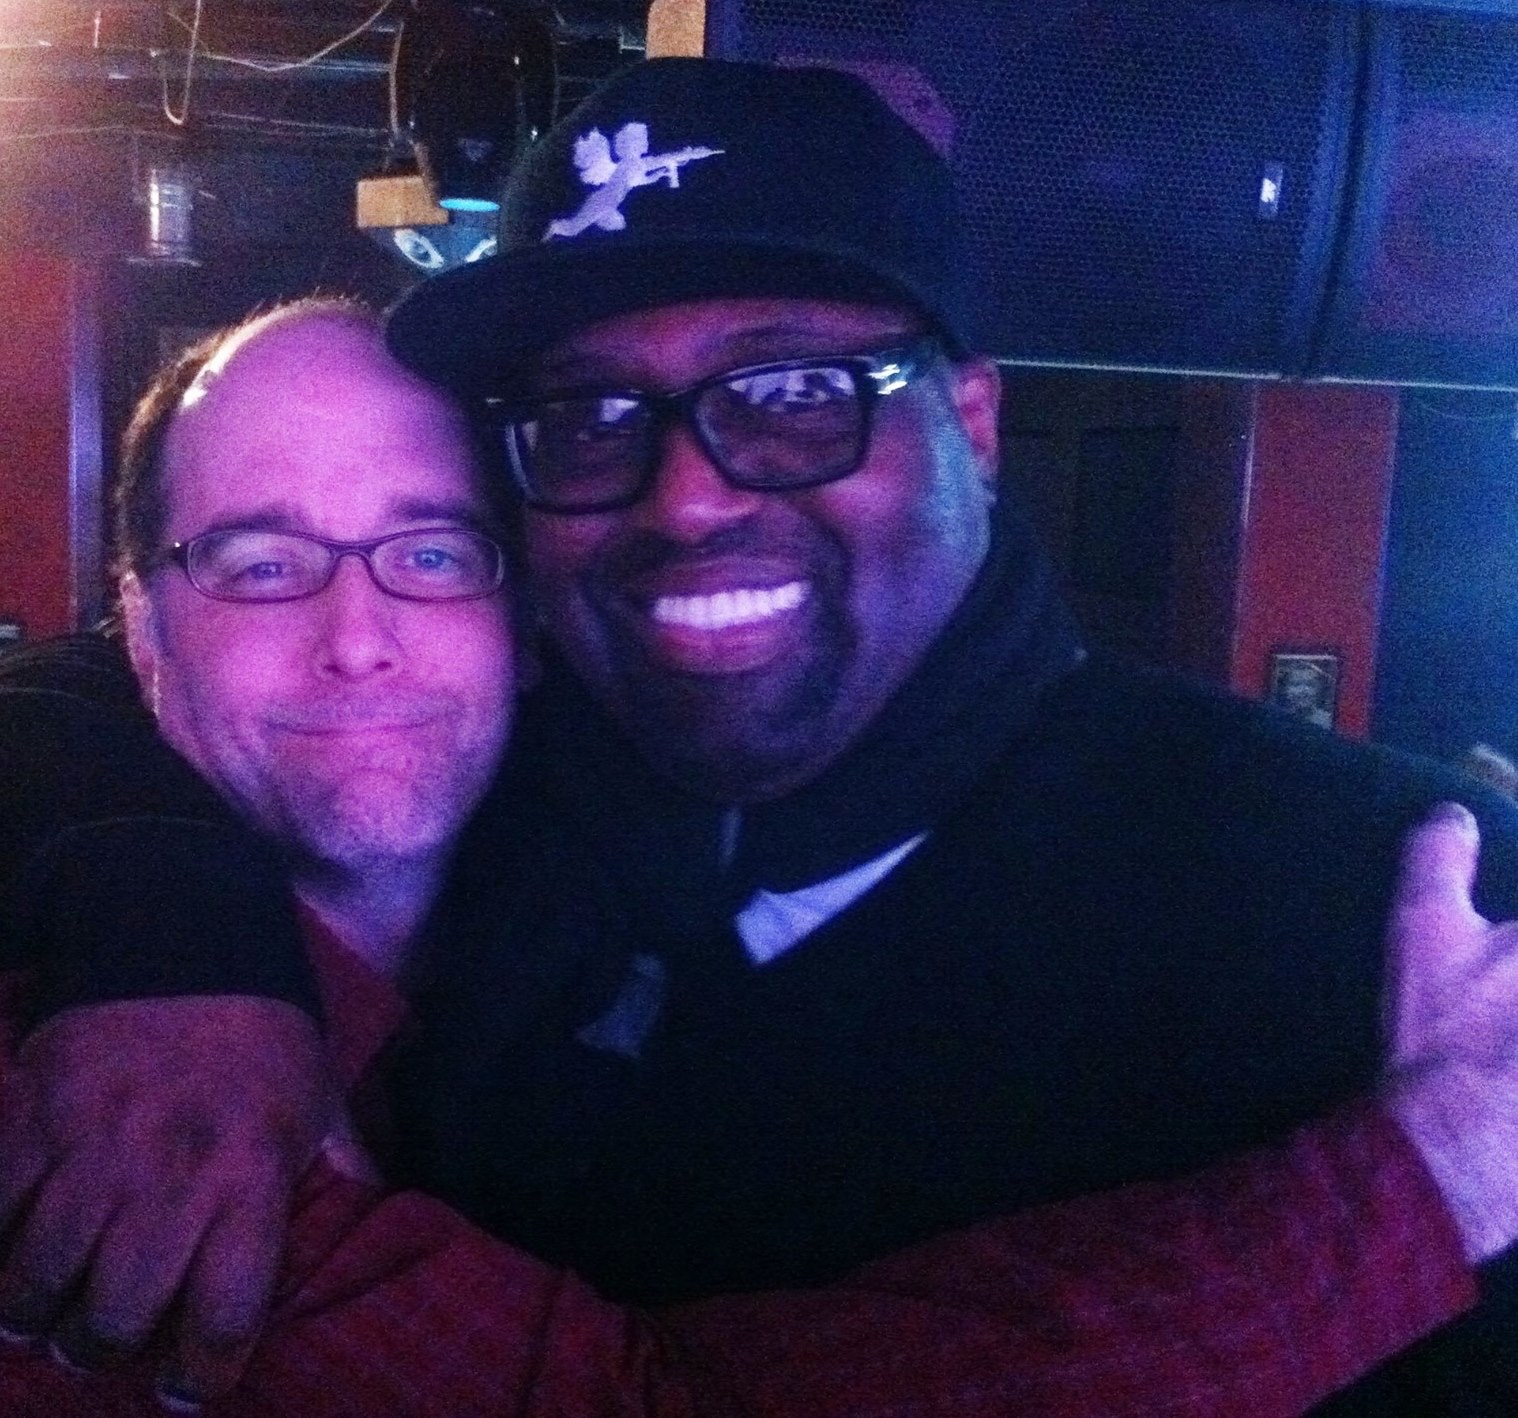 Booking legendary DJ, Frankie Knuckles for the third time, which ended up being his final Chicago performance. RIP. FK Always!